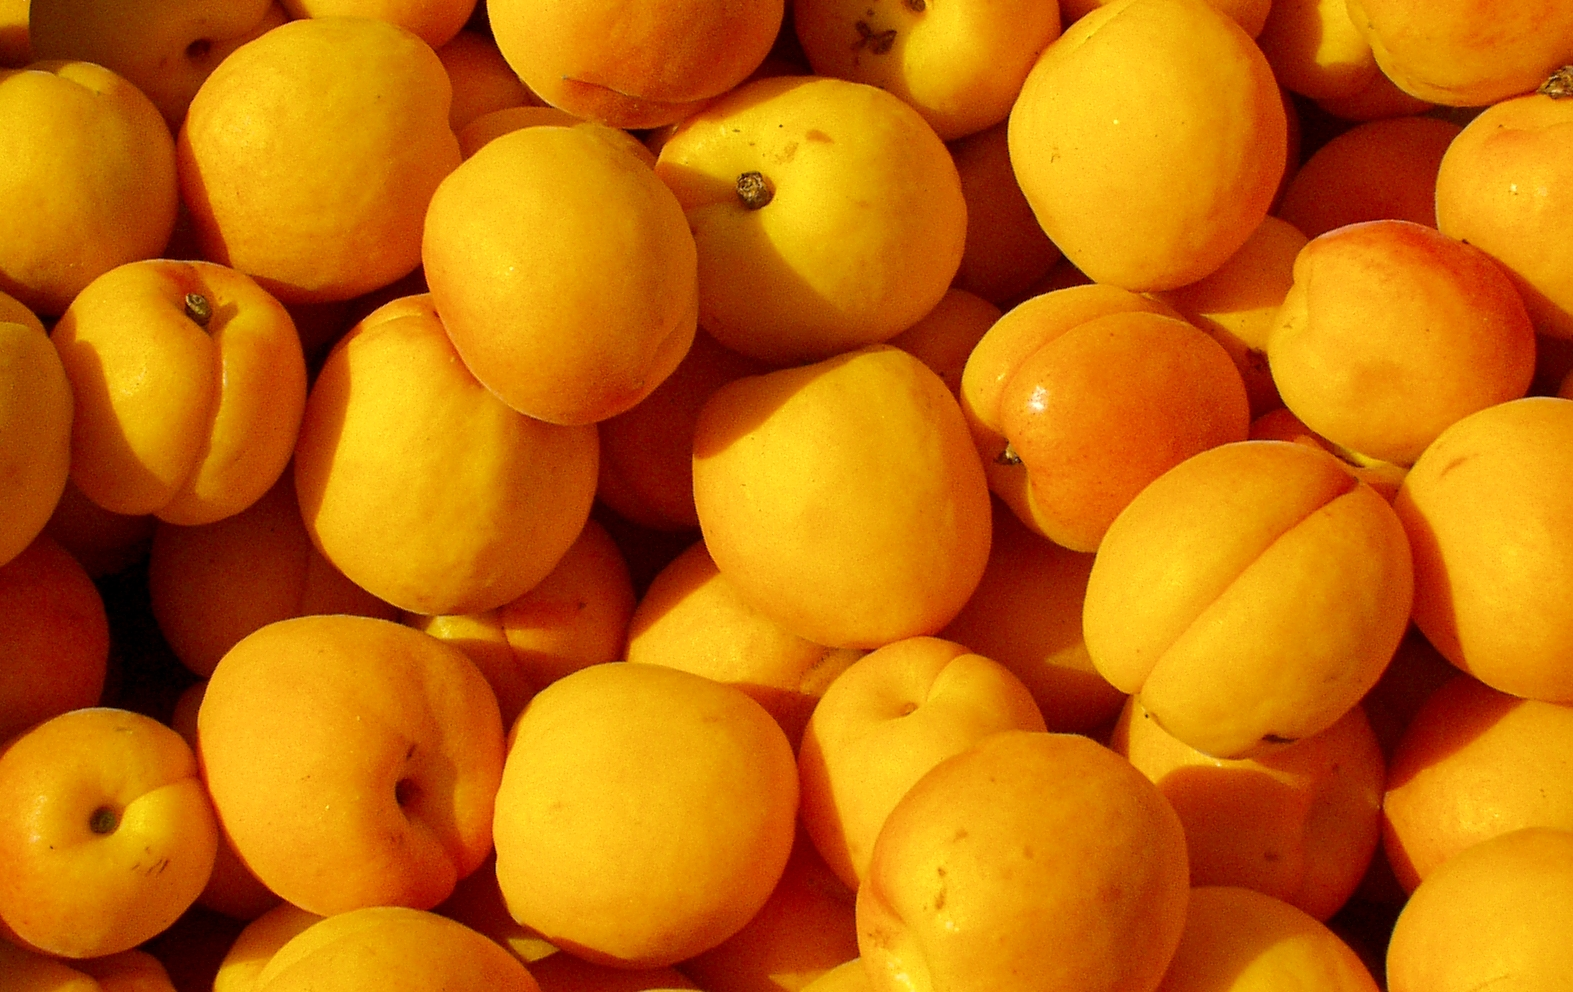 Brilliant, first-of-the-season apricots from ACMA Orchards. Photo copyright 2009 by Zachary D. Lyons.